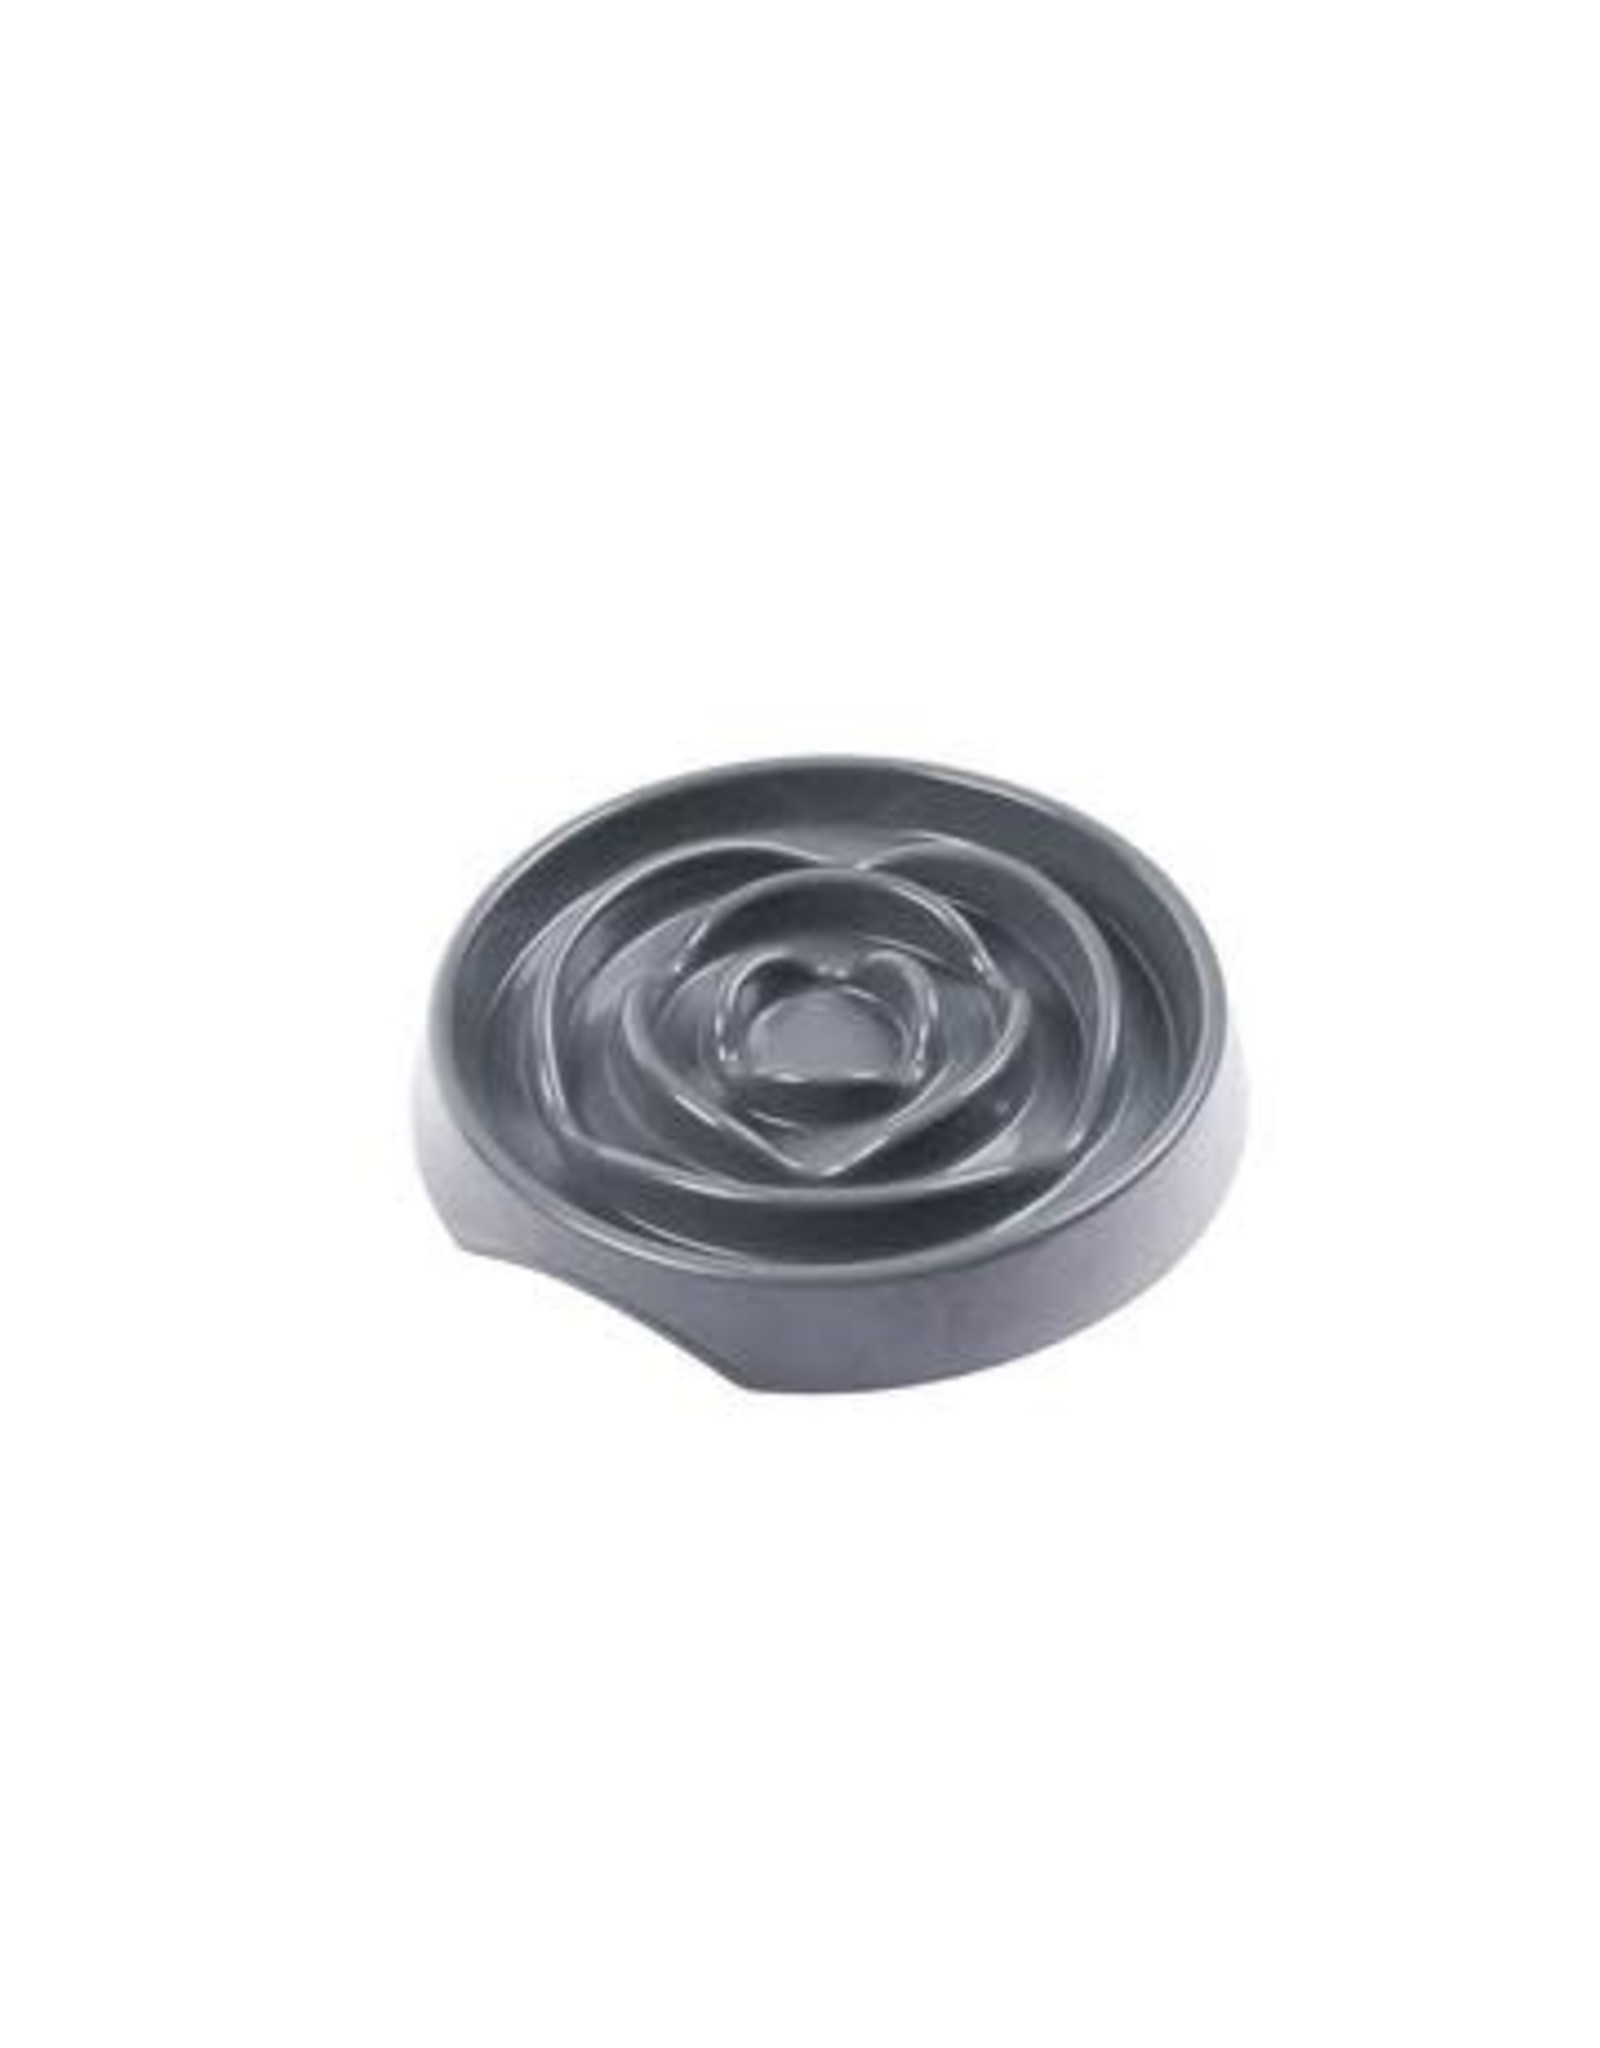 Messy Mutts Messy Mutts Interactive Slow Feeder Cool Grey 1.75 Cup